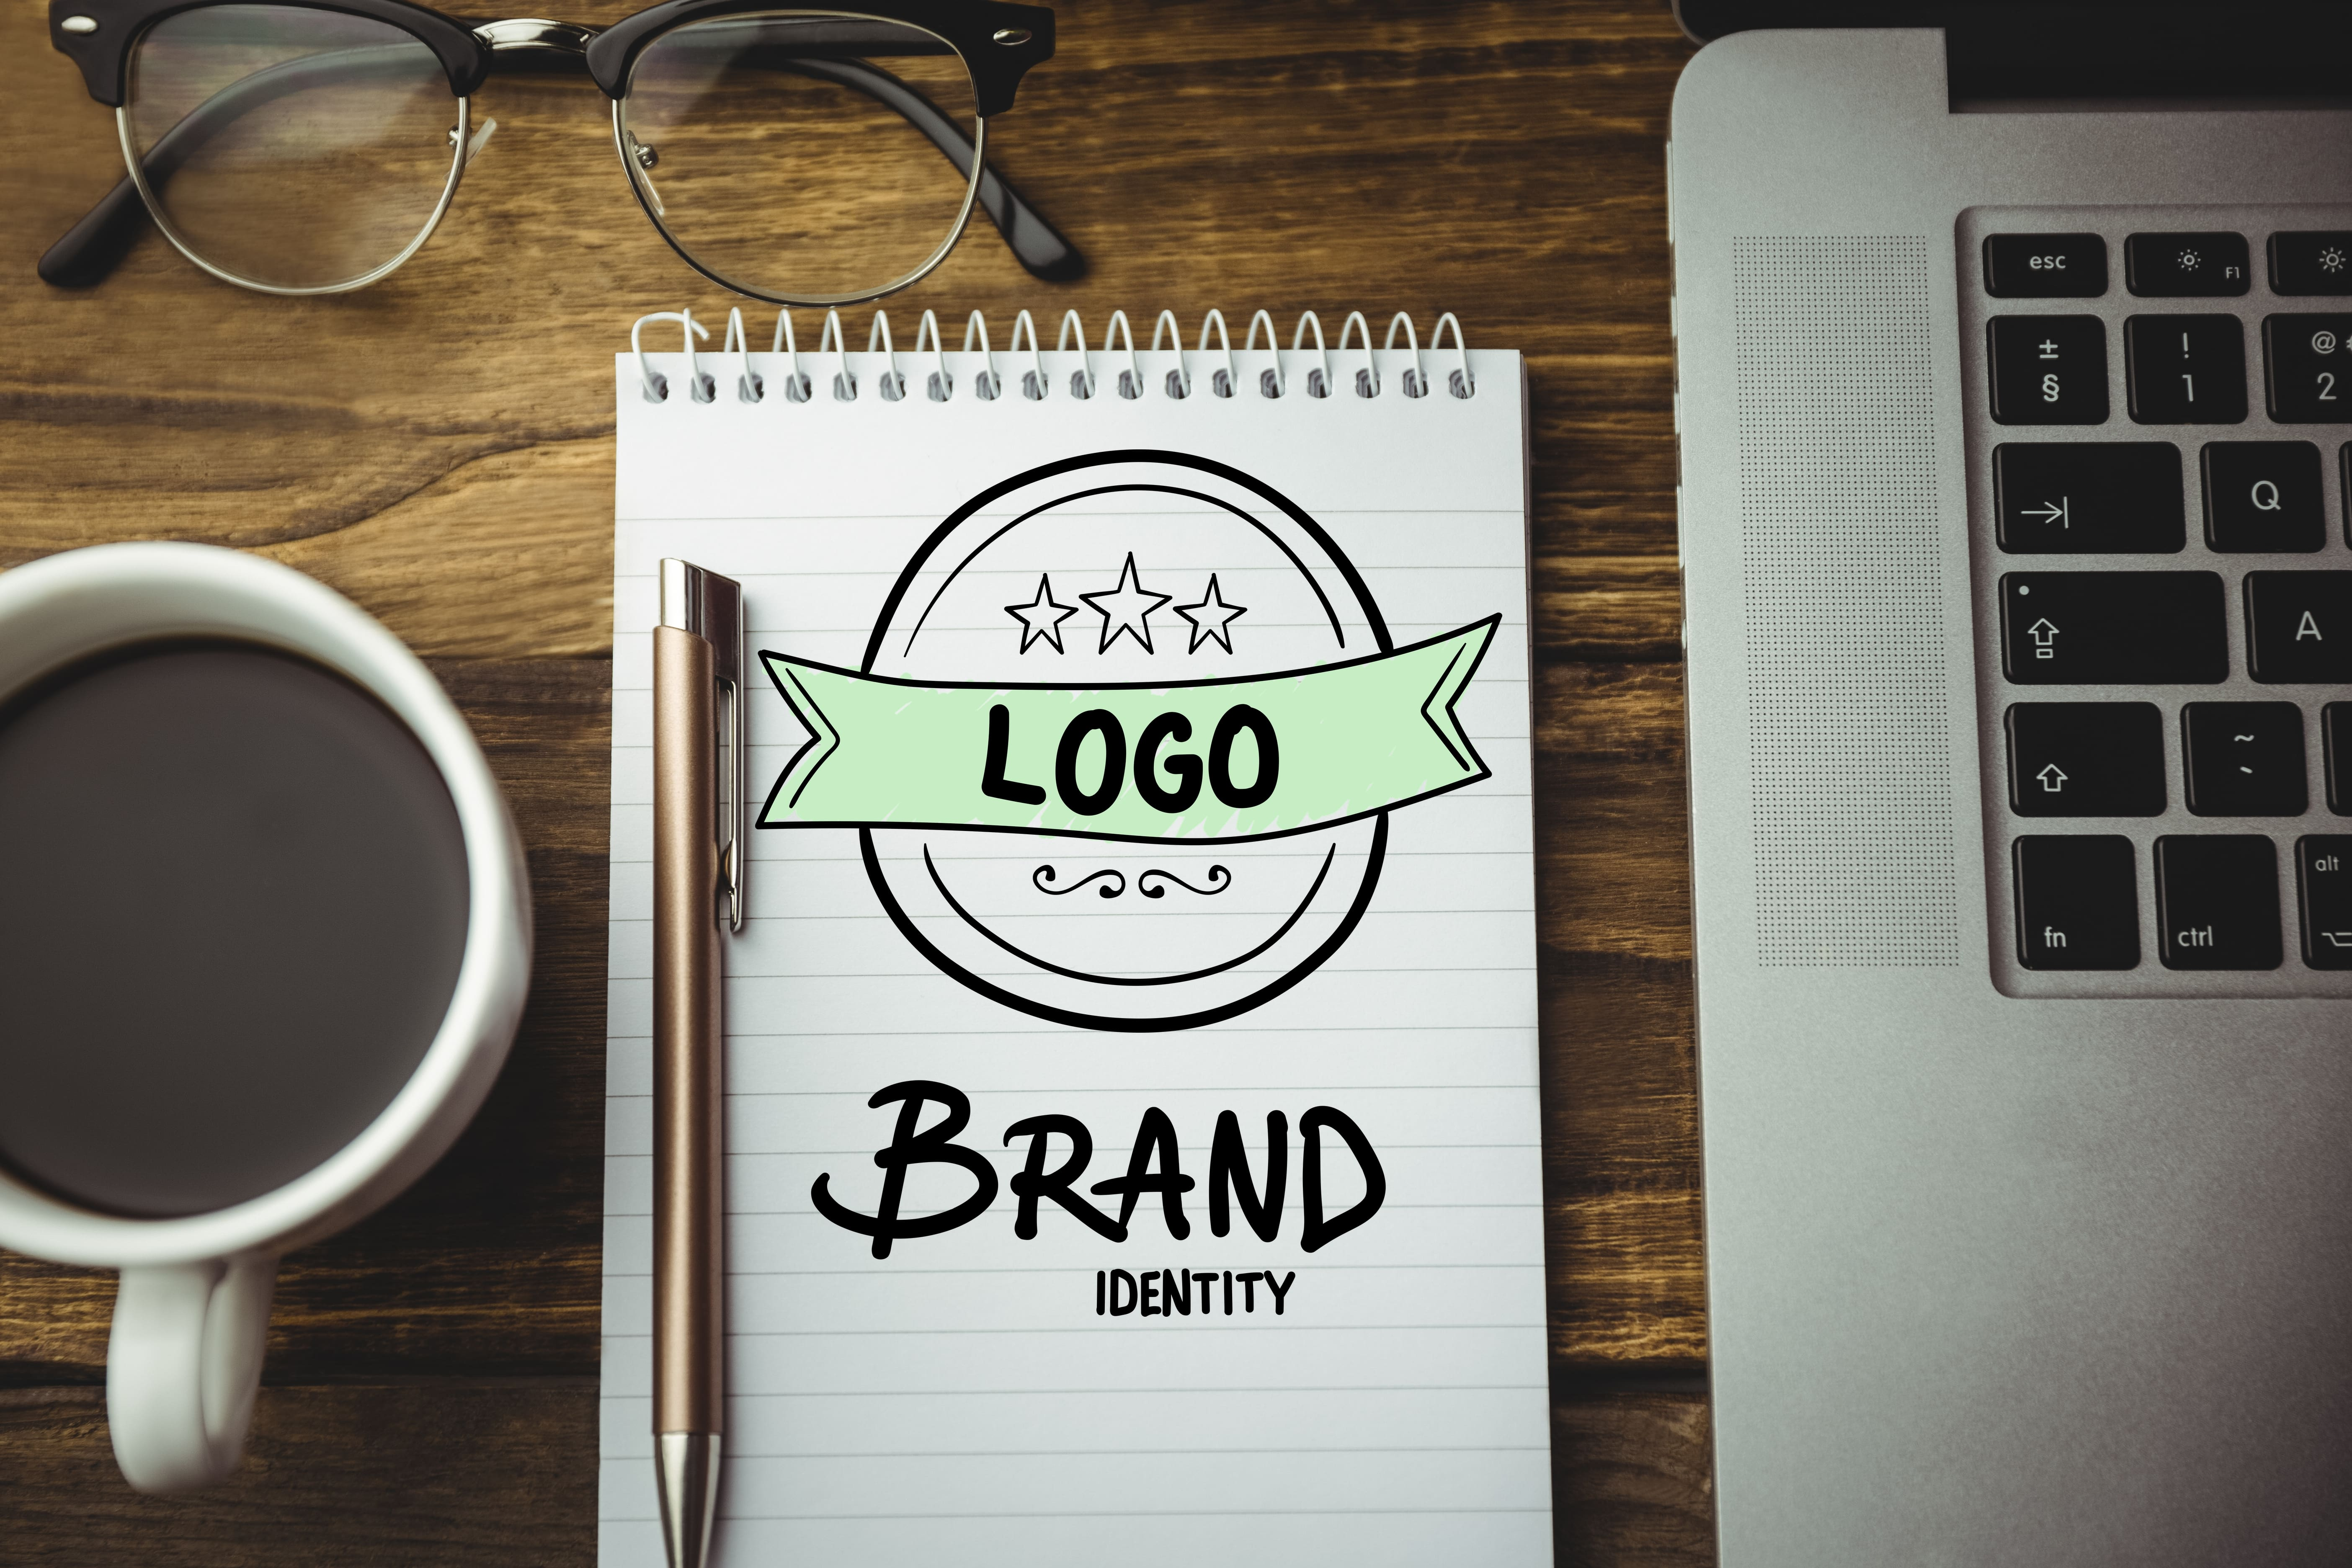 5 Startup Branding Trends to Adopt in 2019